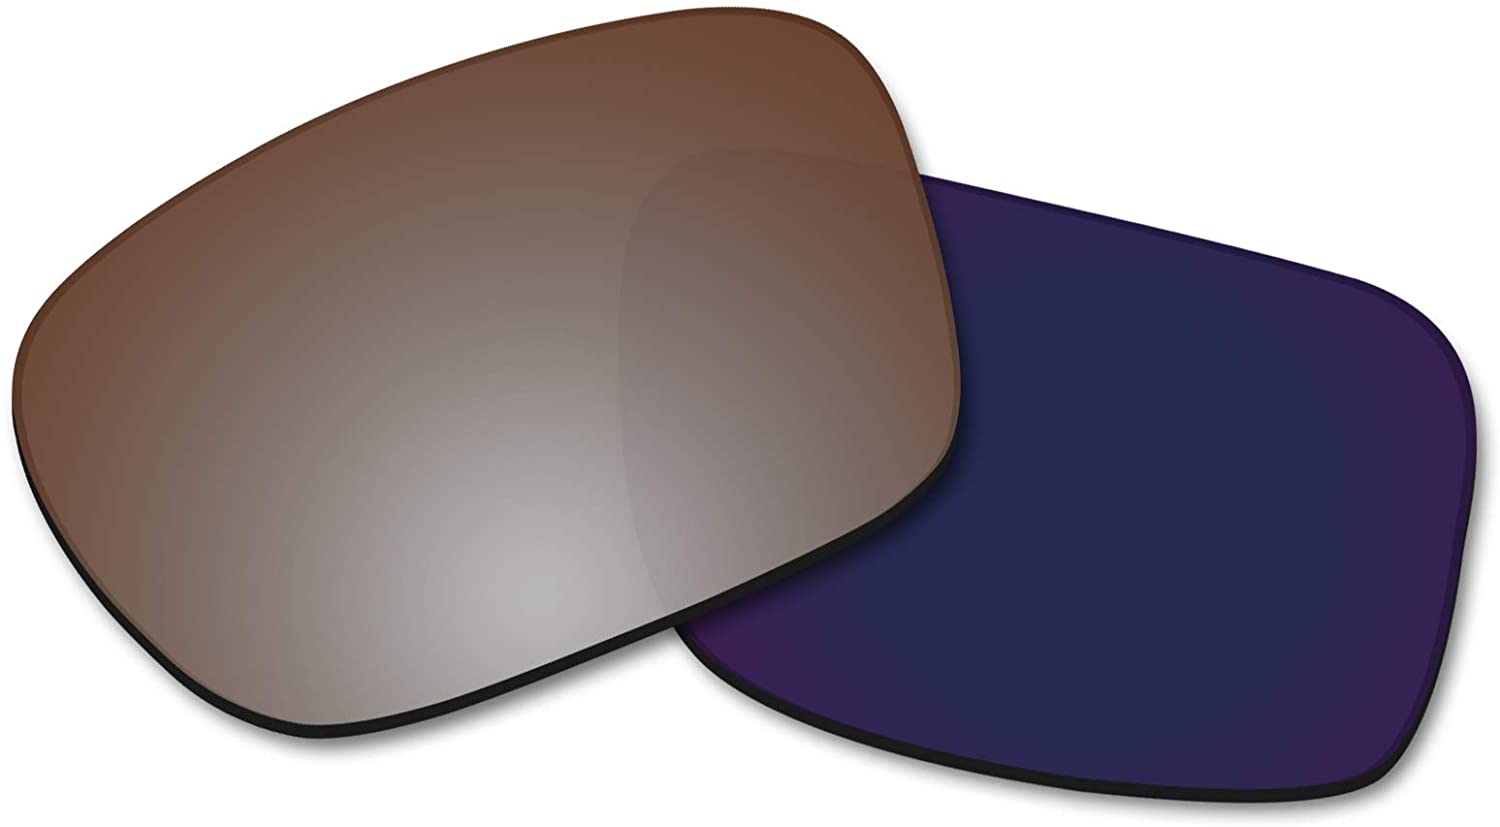 Betterun Polycarbonate Polarized Replacement Lenses for Oakley Scalpel